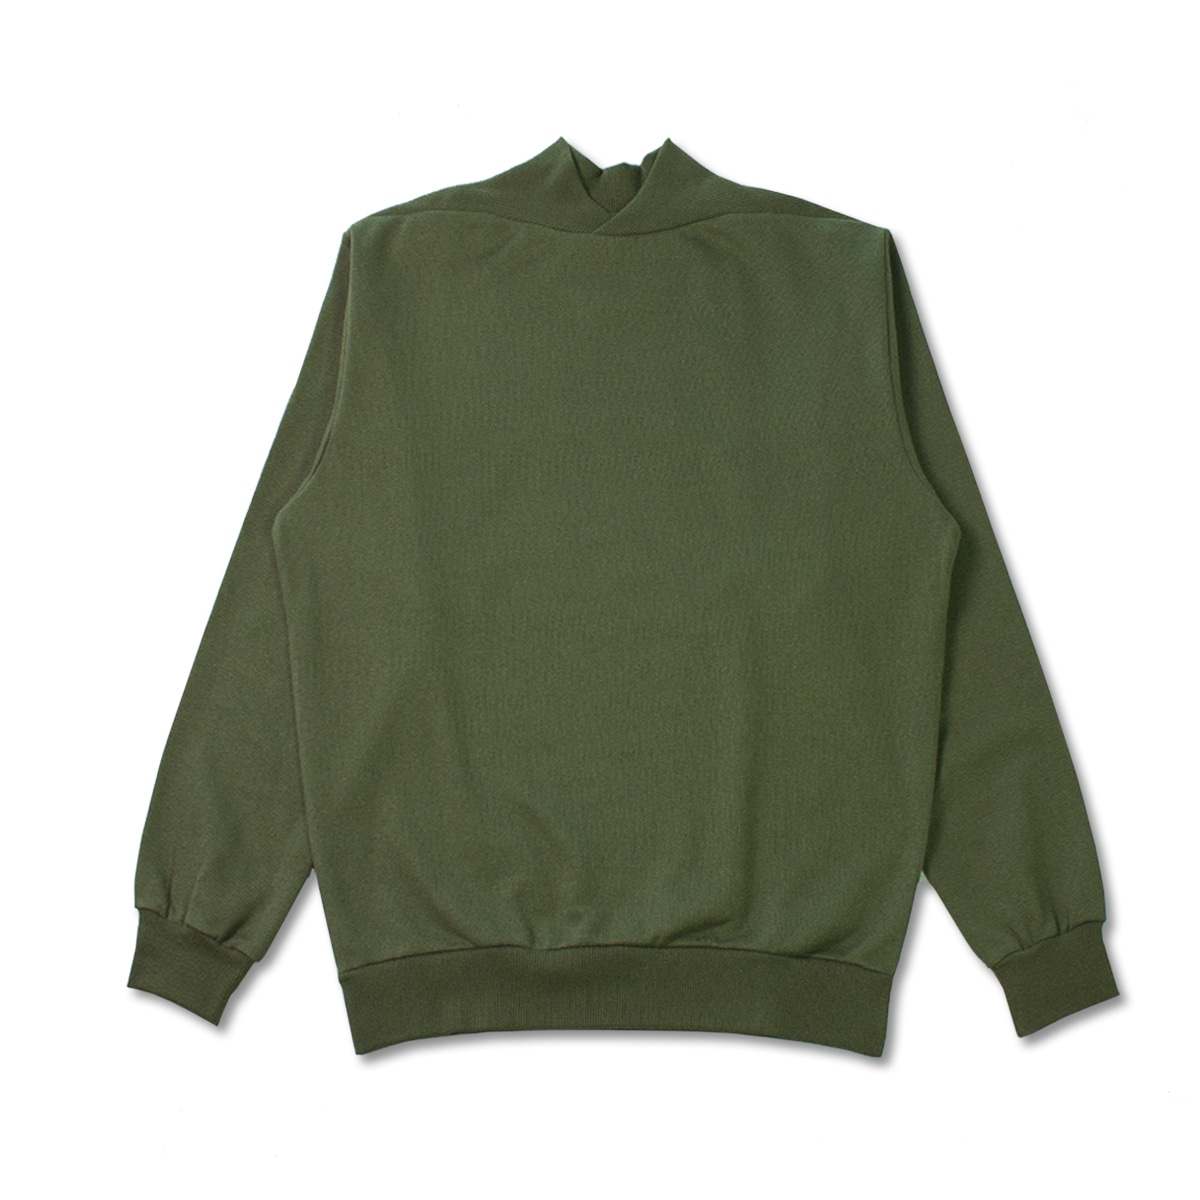 [DE BONNE FACTURE] SUPIMA COTTON FLEECE SWEATSHIRT 'KHAKI'